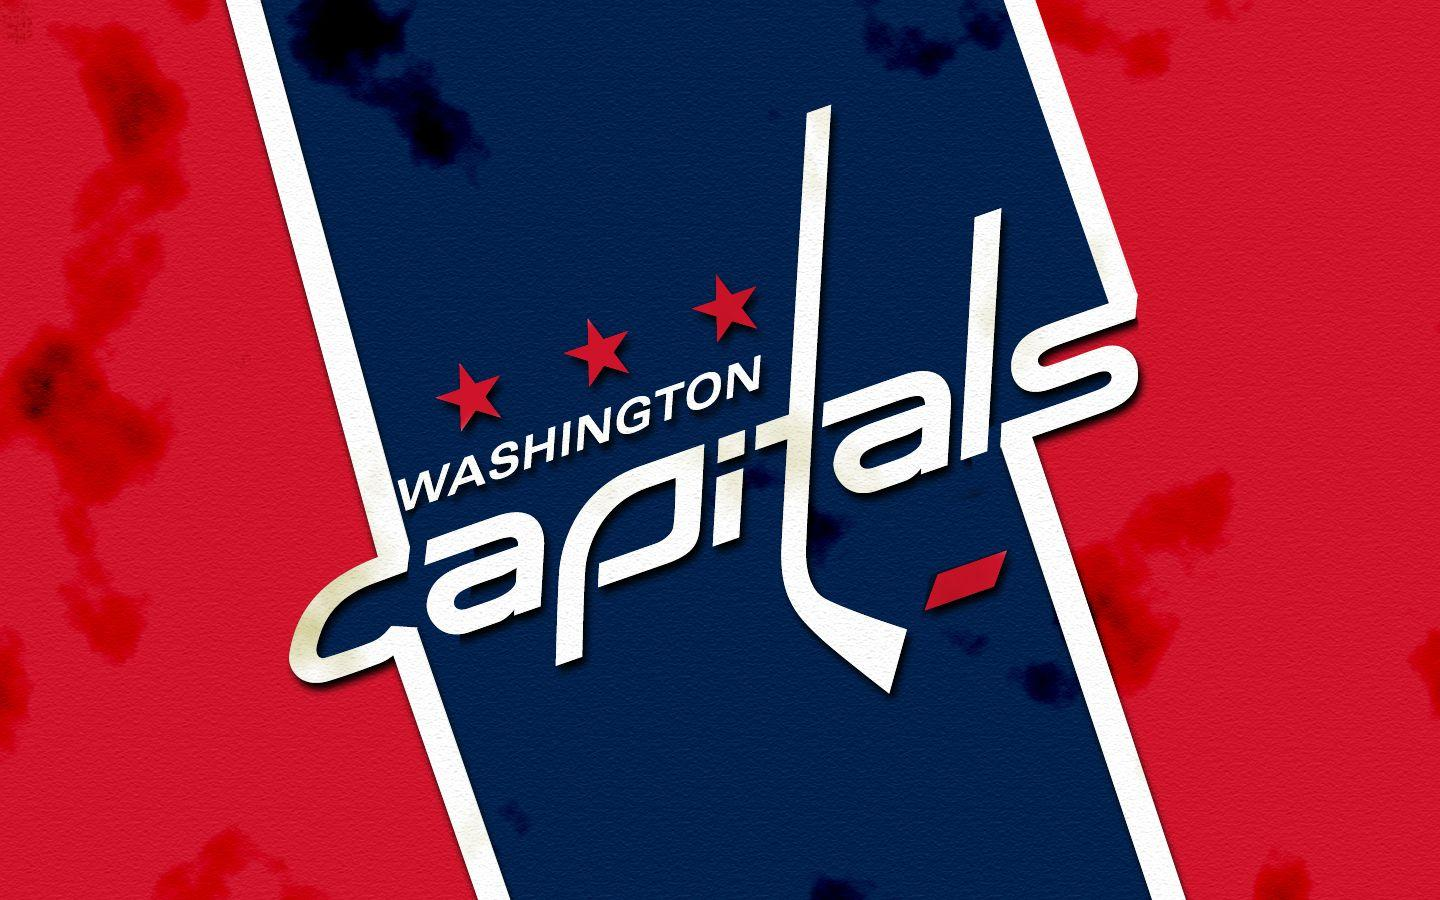 1920x1200px Wallpapers of Washington Wizards HD 33 #1472921264